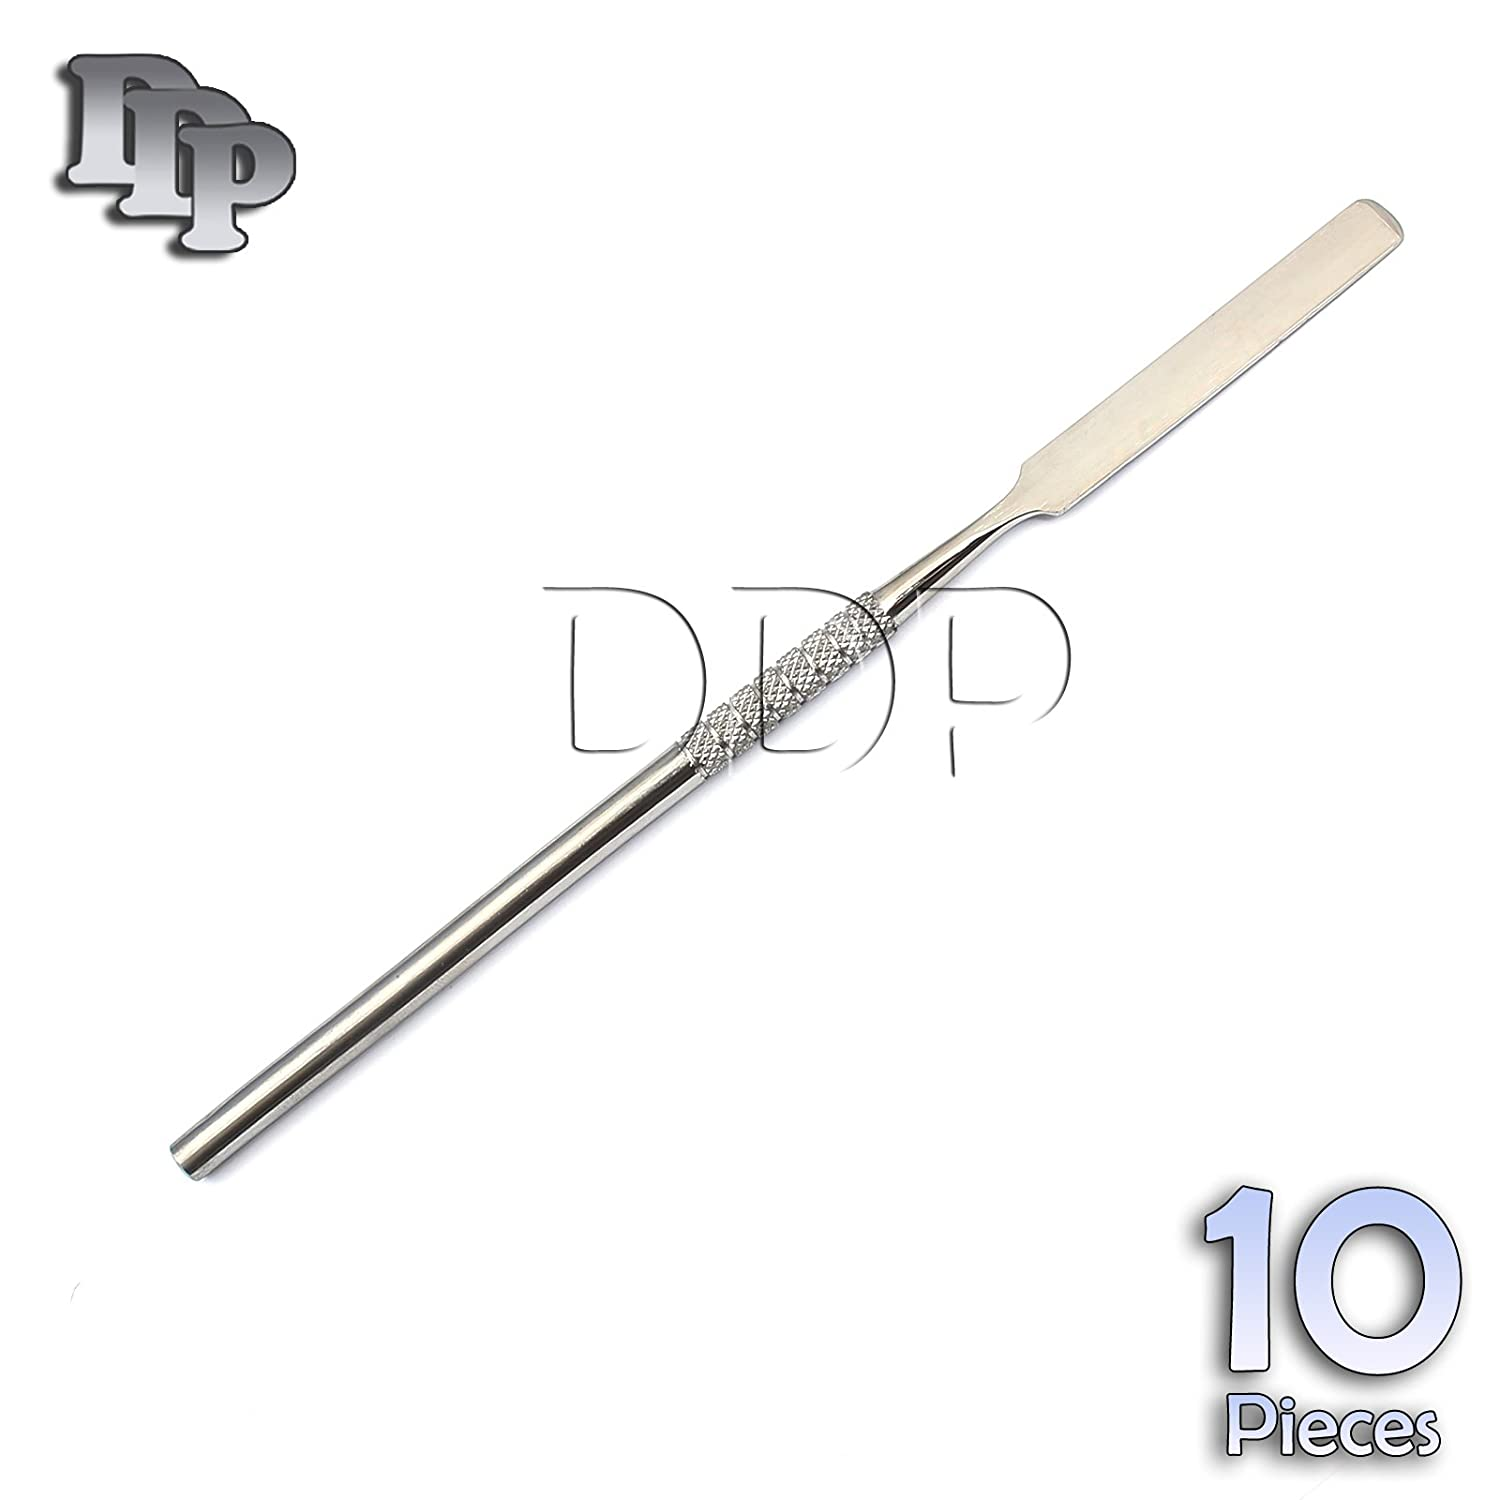 DDP 10 PCS DENTAL CEMENT LAB MIXING 17.6CM SPATULAS WAX MODELING STAINLESS STEEL INSTRUMENTS